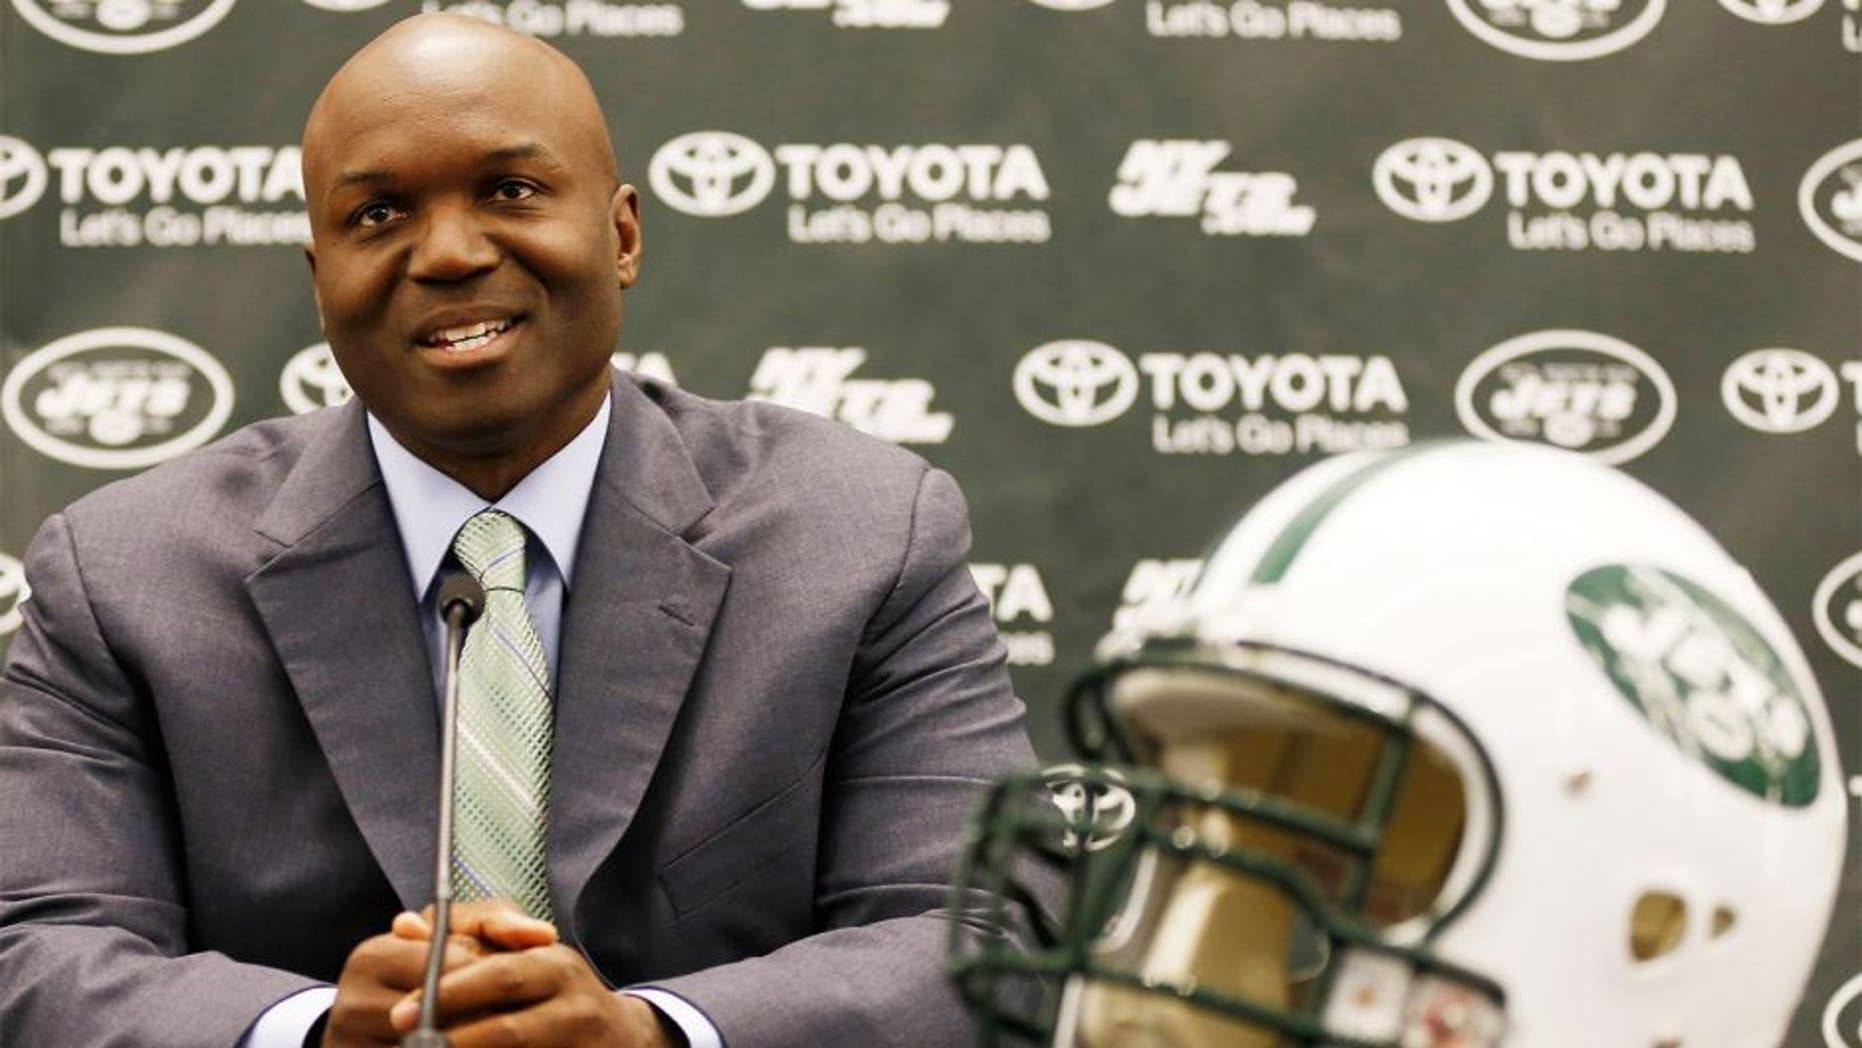 Jan 21, 2015; Florham Park, NJ, USA; New York Jets new head coach Todd Bowles speaks during a press conference at Atlantic Health Jets Training Center. Mandatory Credit: William Perlman/NJ Advance Media for NJ.com via USA TODAY Sports